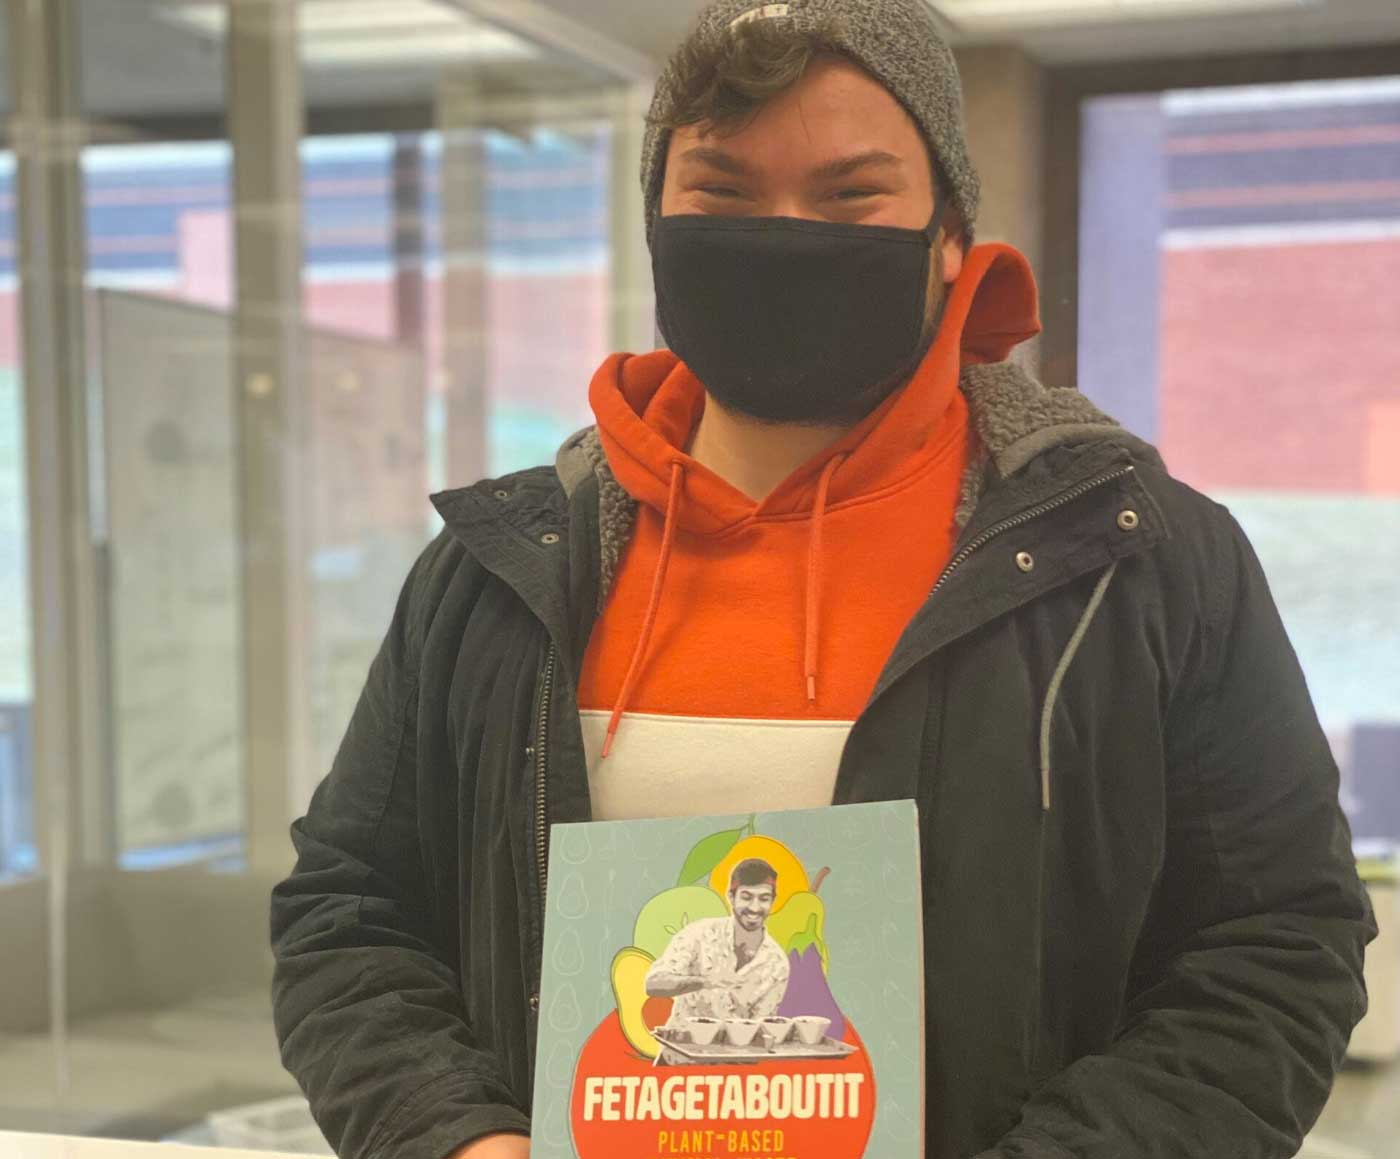 Ethan Tyo is holding the Fetagetaboutit book